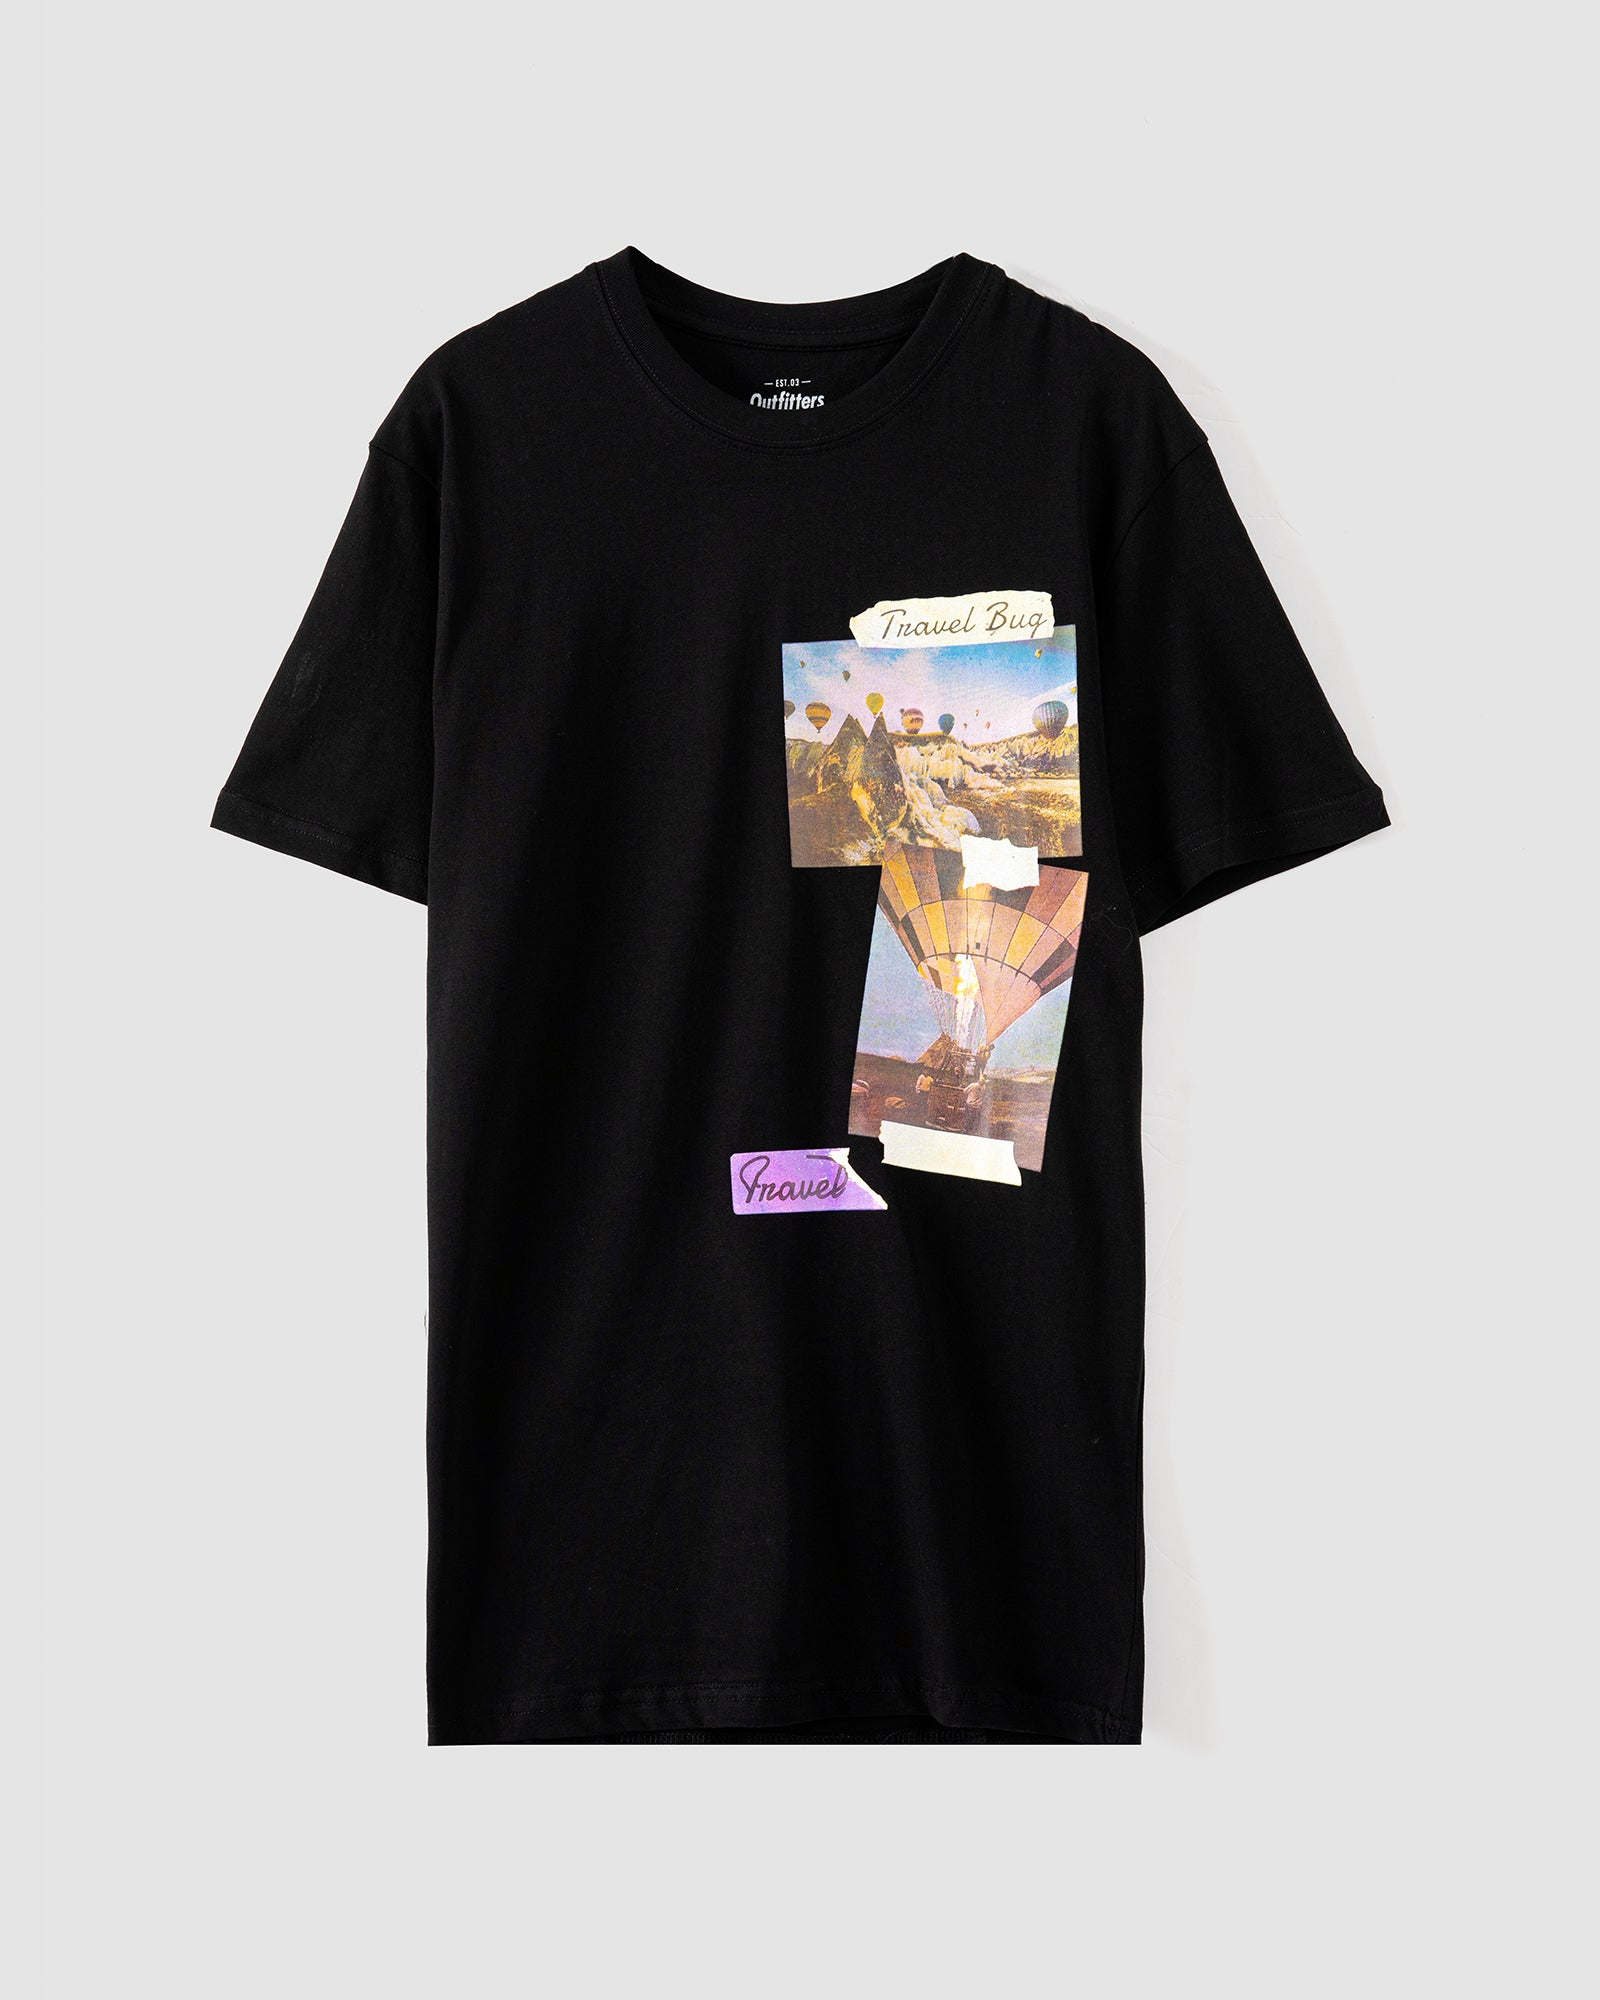 Travel Bug Graphic Tee